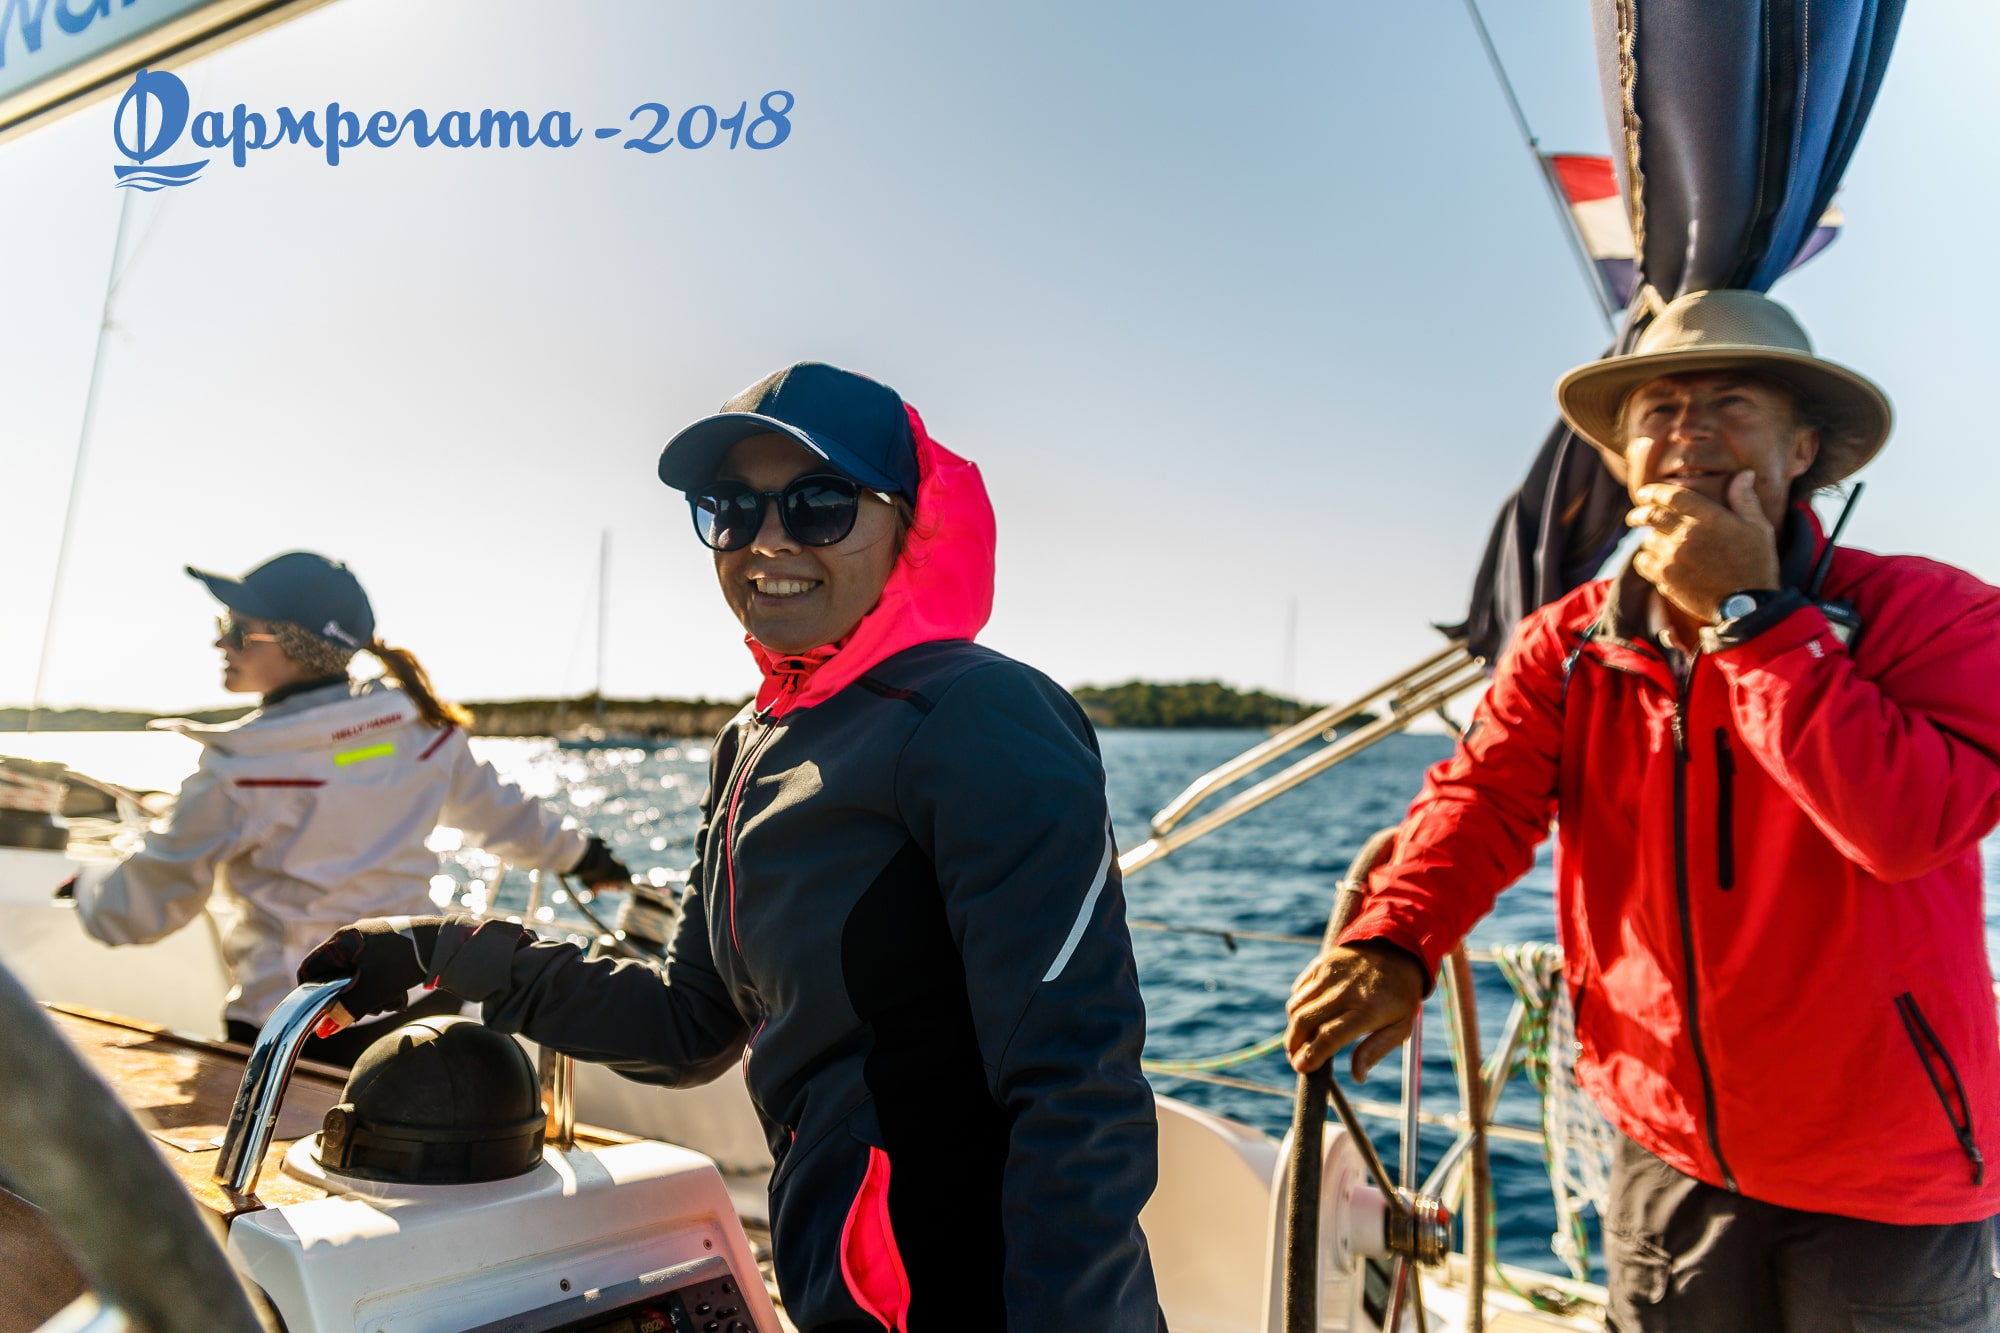 Яхтинг - ДСМ групп Фармрегата 2018 - DSM Group Pharmregata 2018